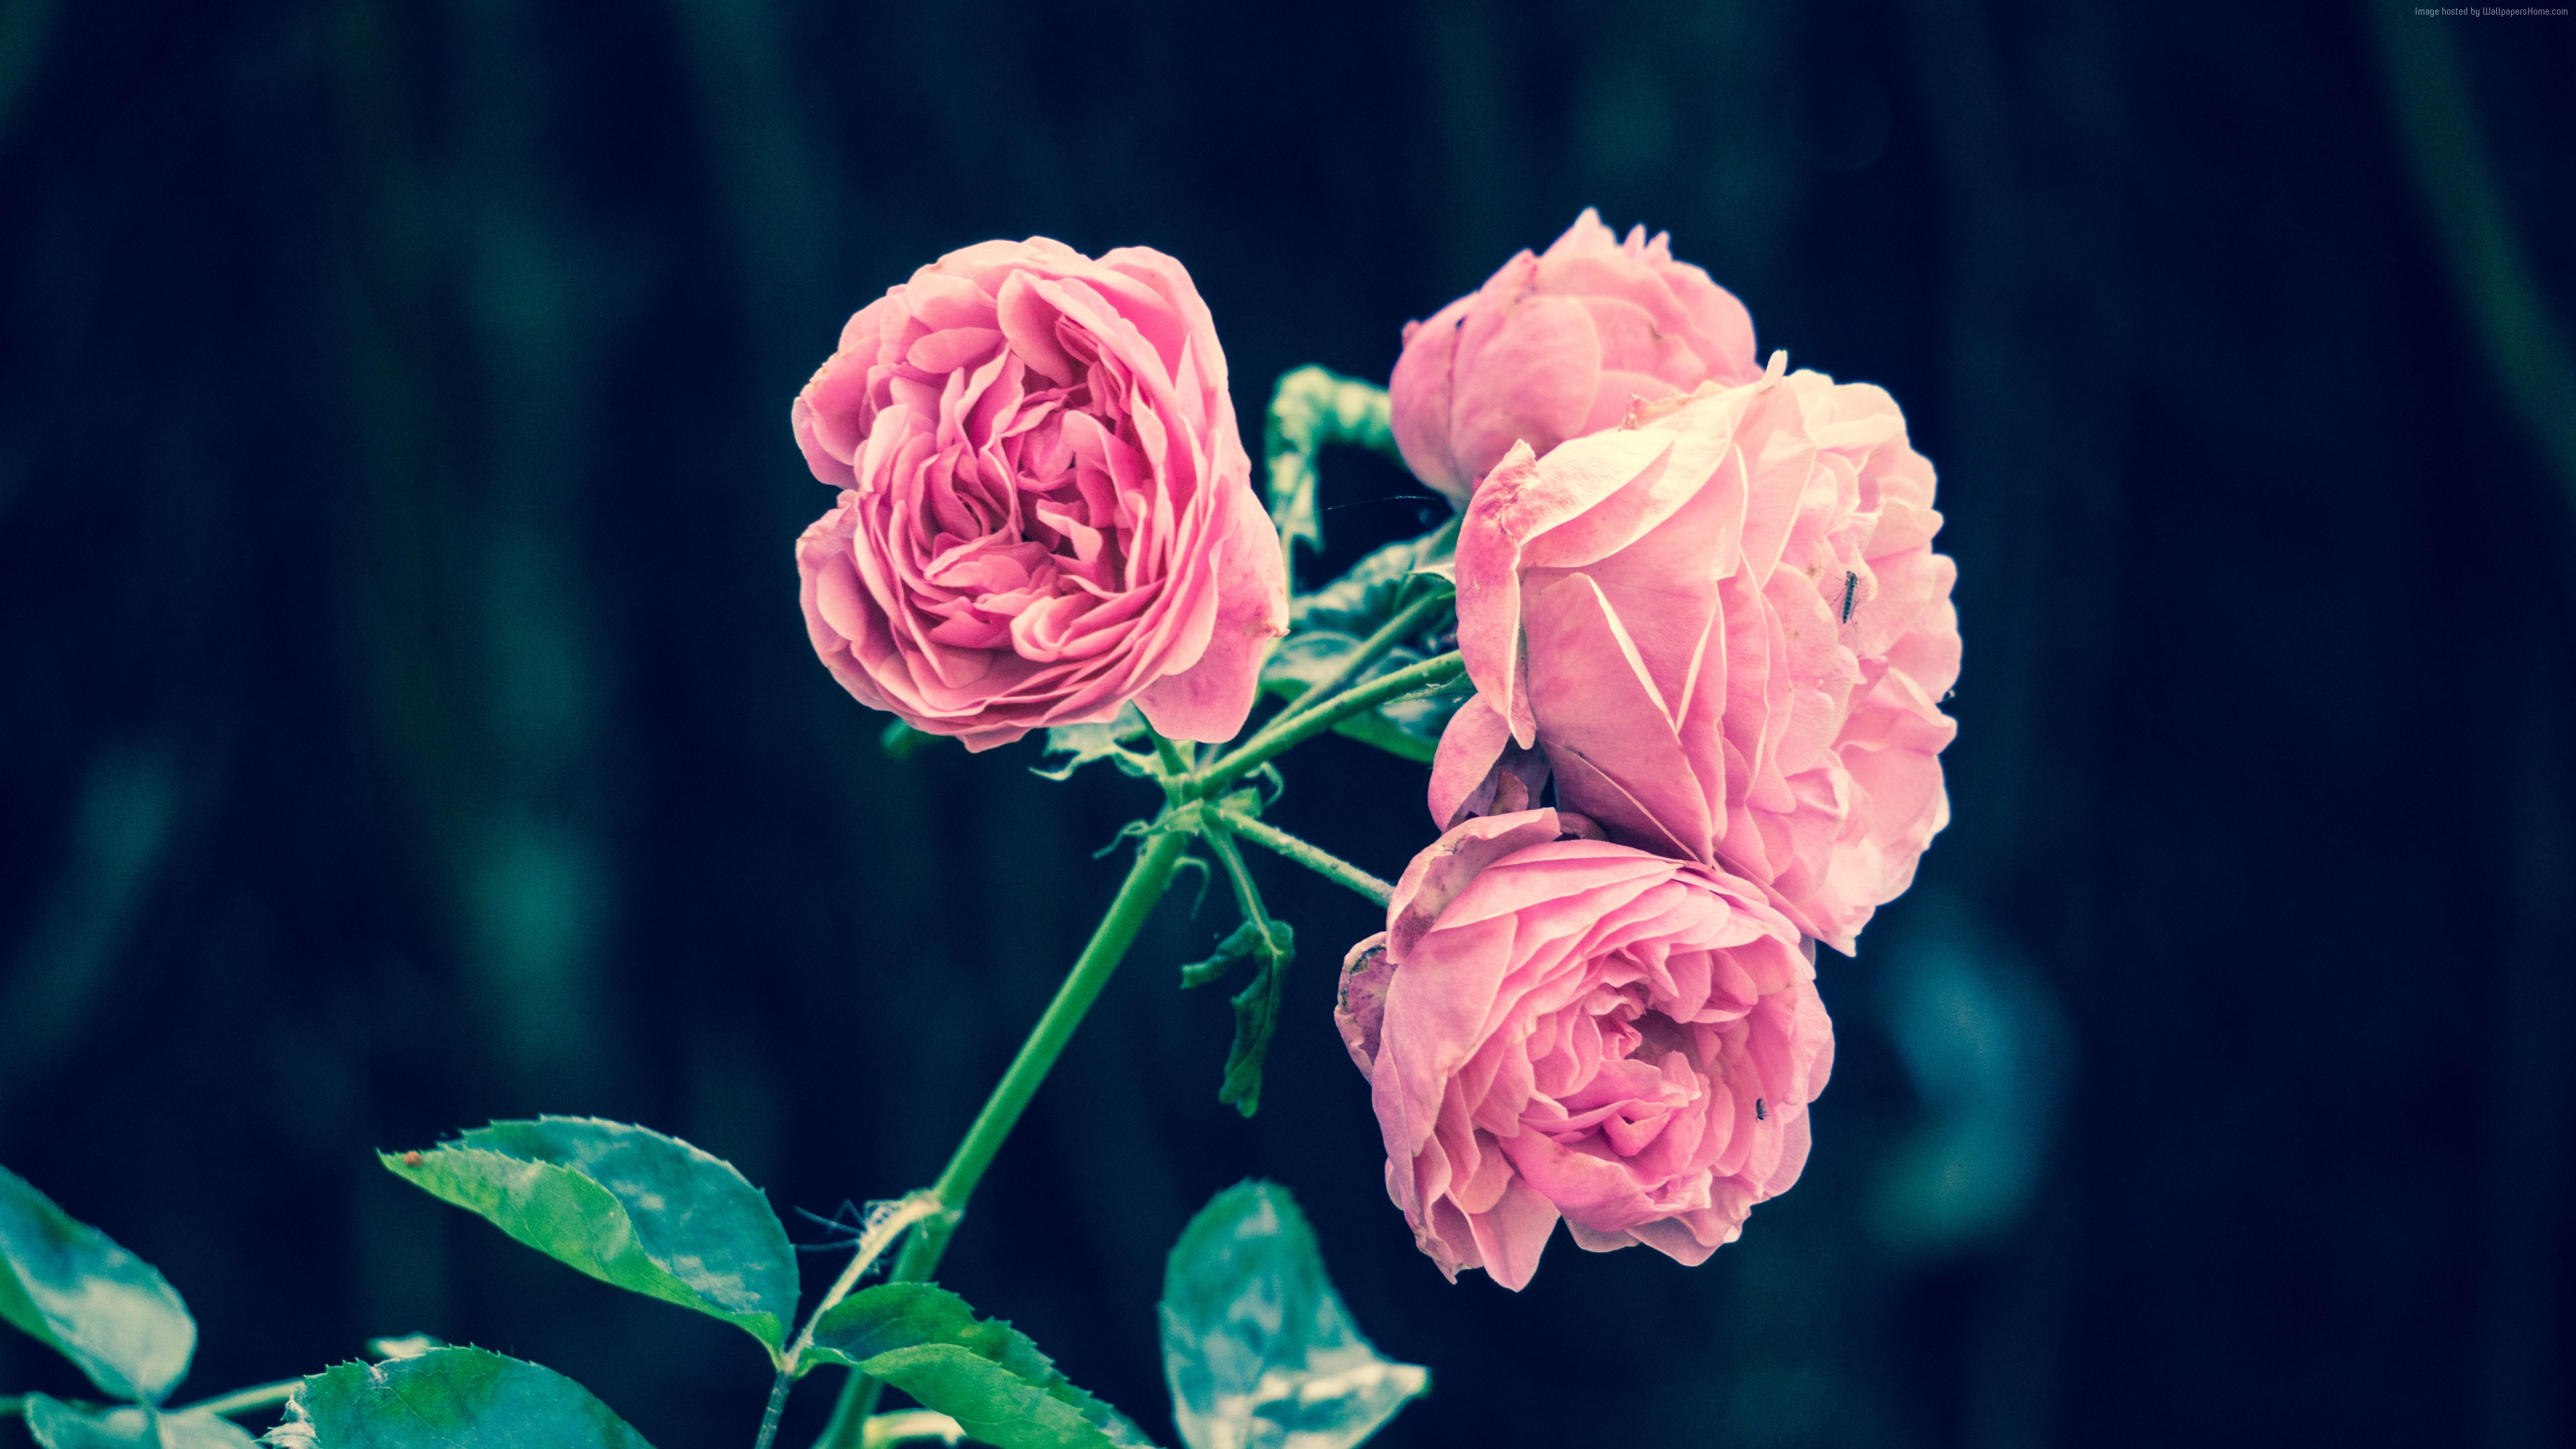 Stock Images rose, flowers, 5k, Stock Images